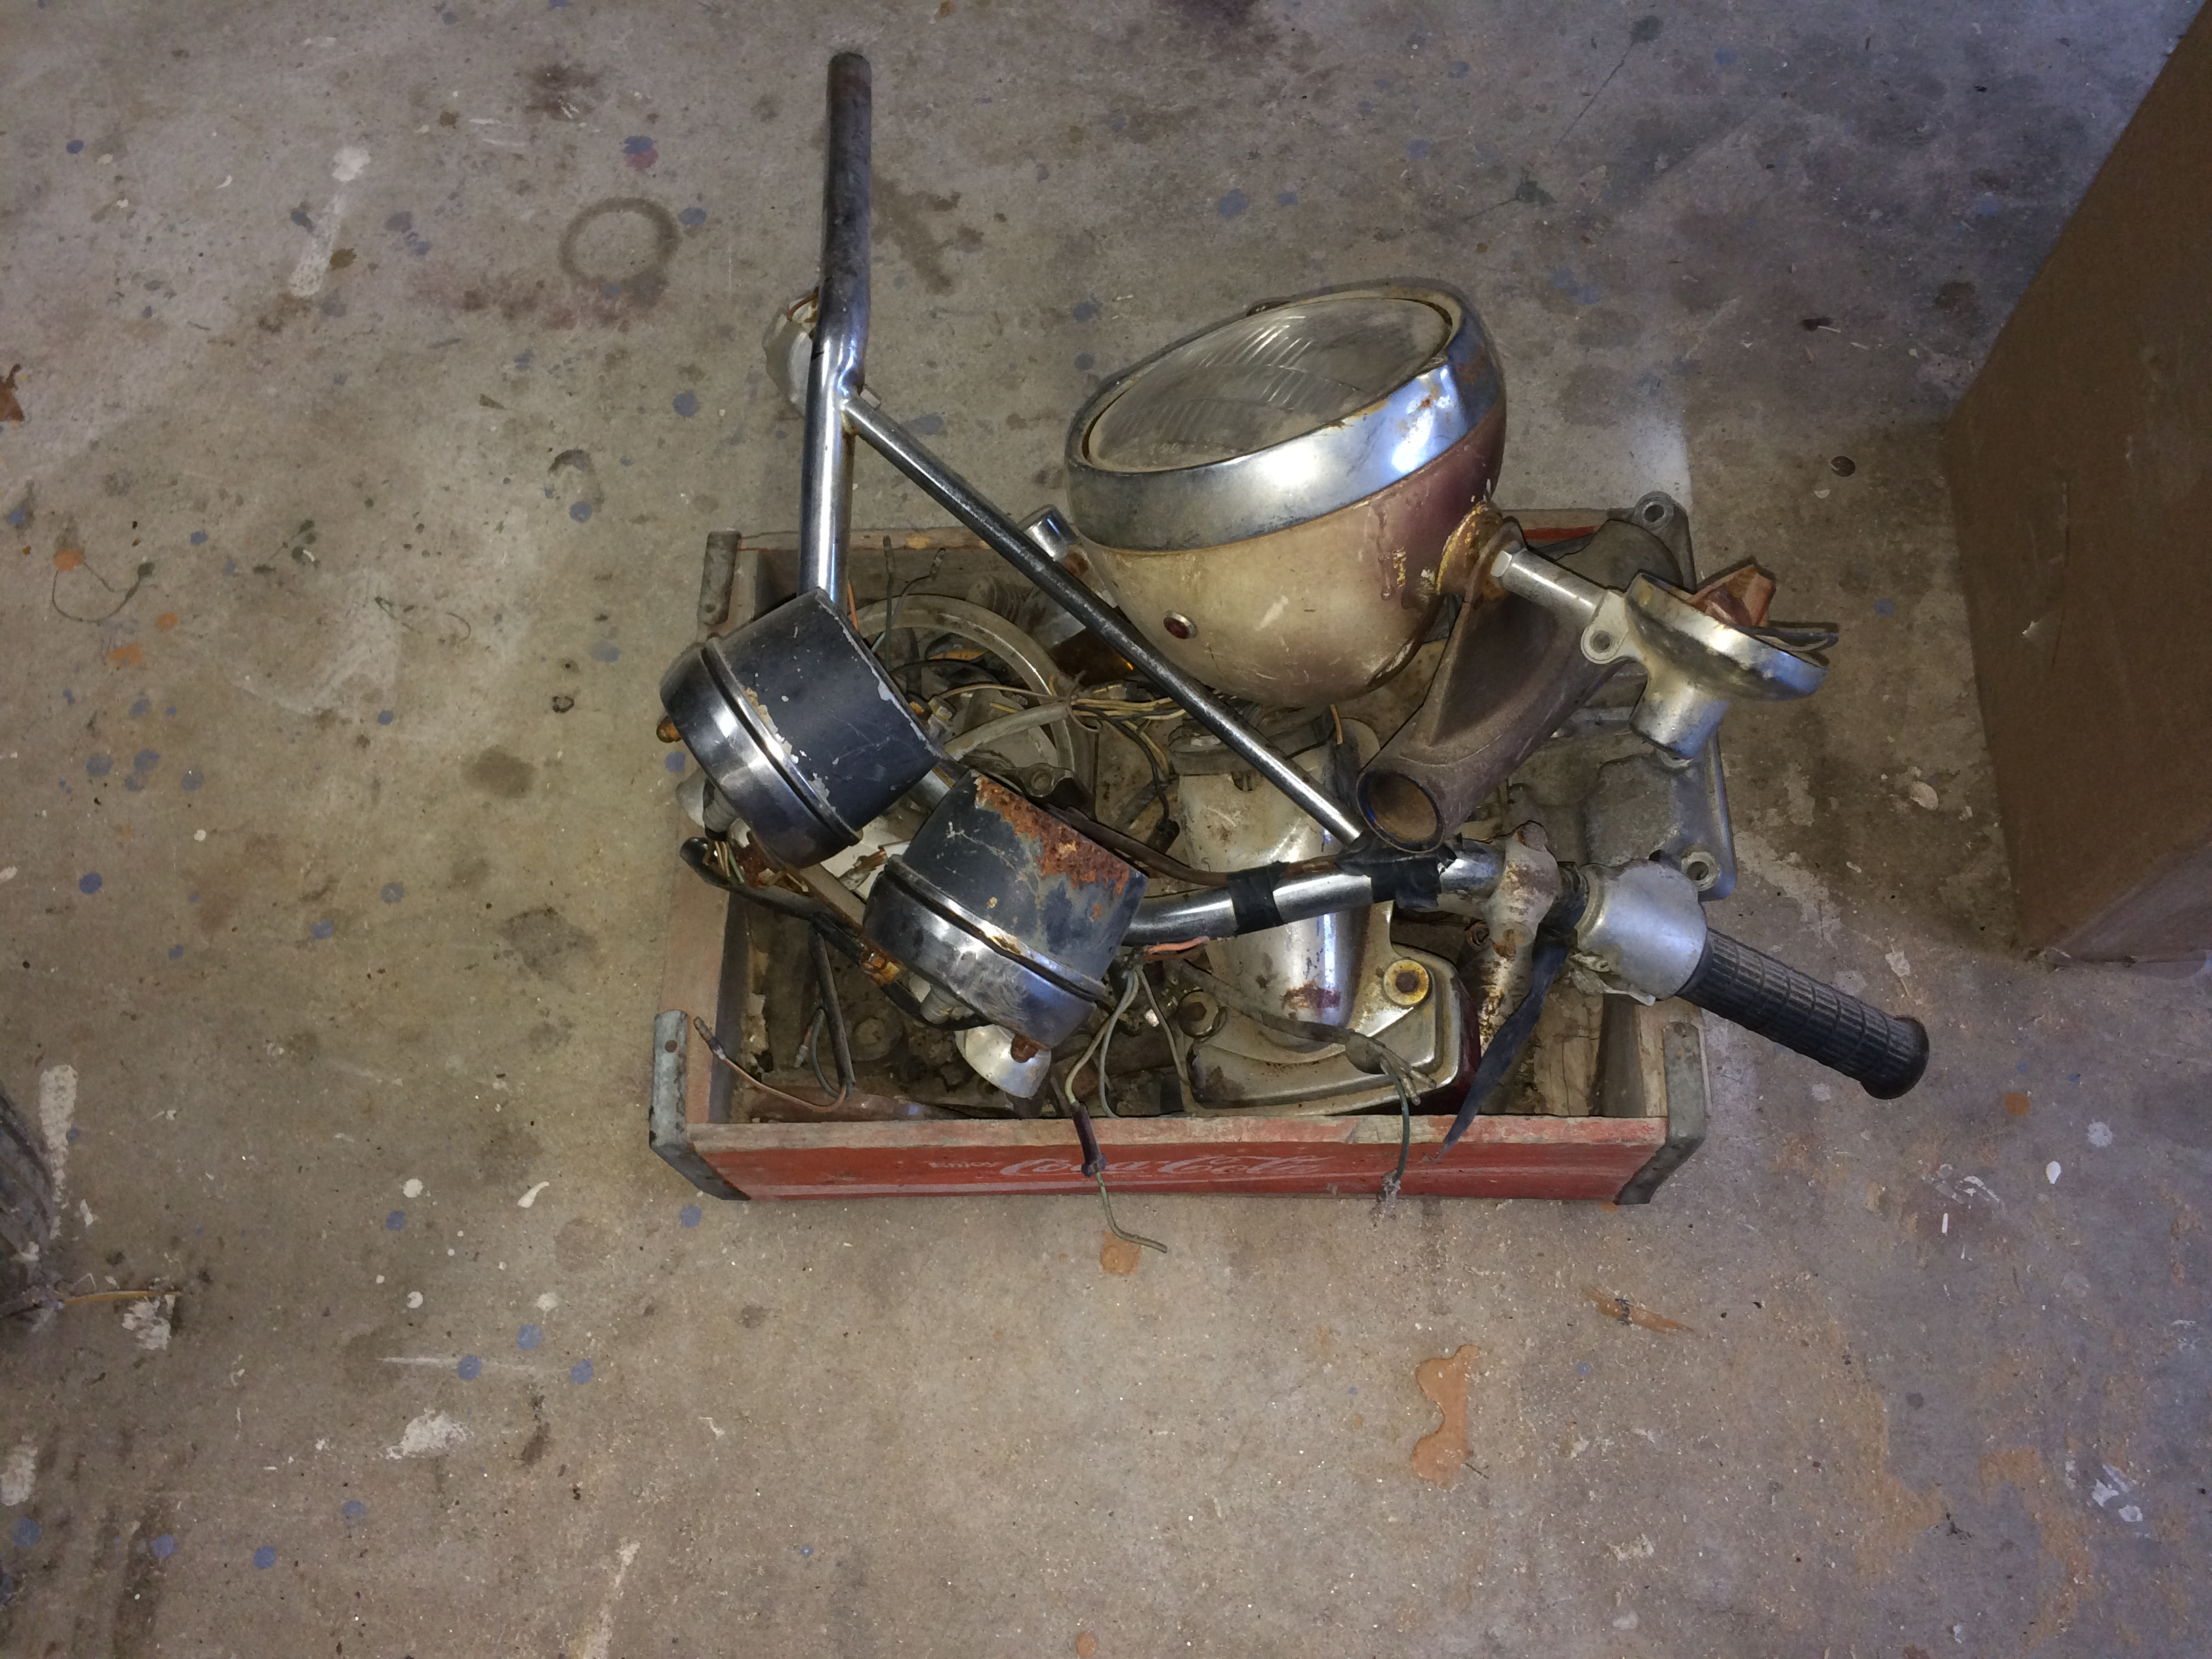 1972 CL 350 non-running; partially disassembled; for parts or restoration-img_1221.jpg